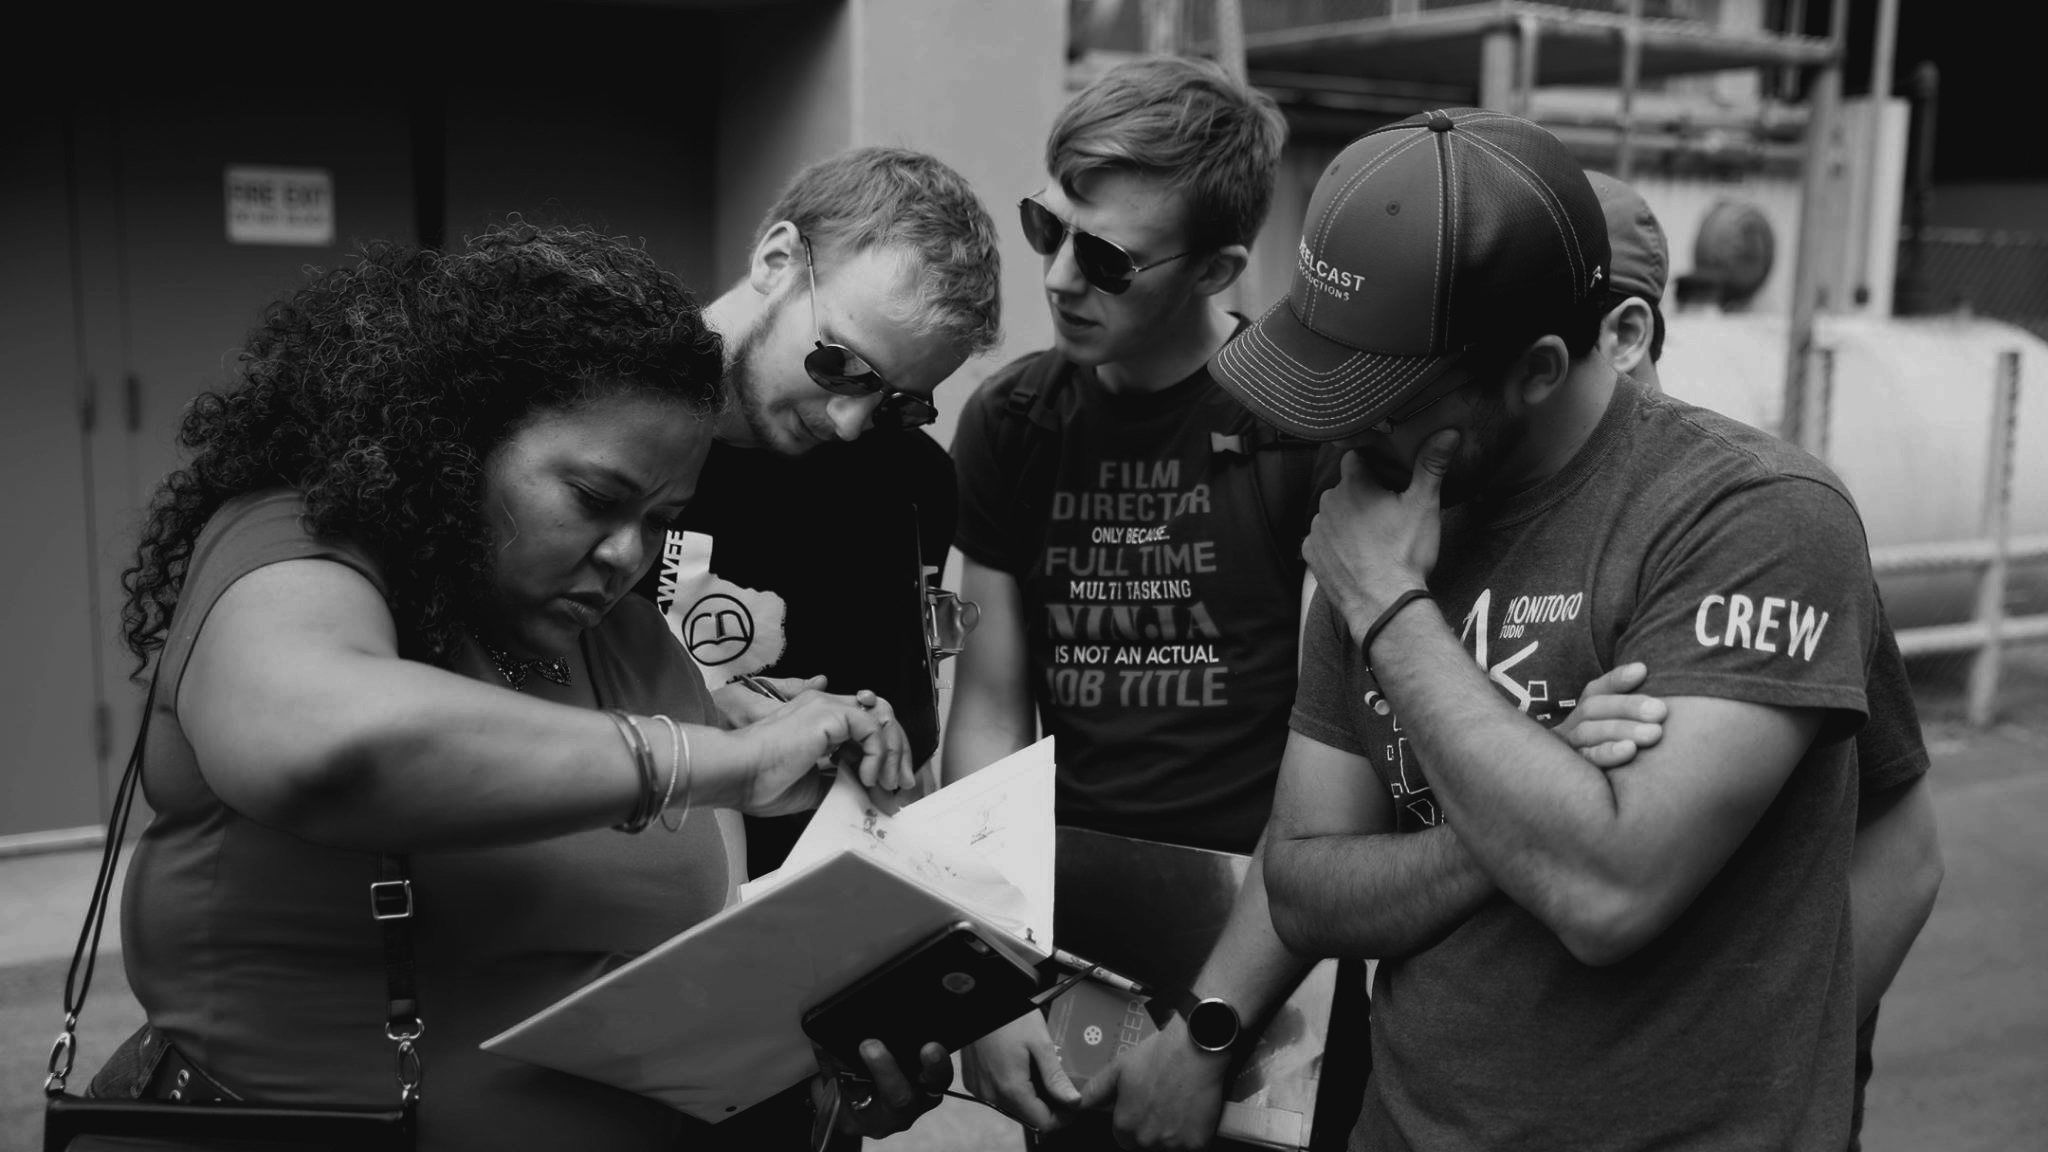 5 Important Lessons I learned as a First-Time Assistant Director